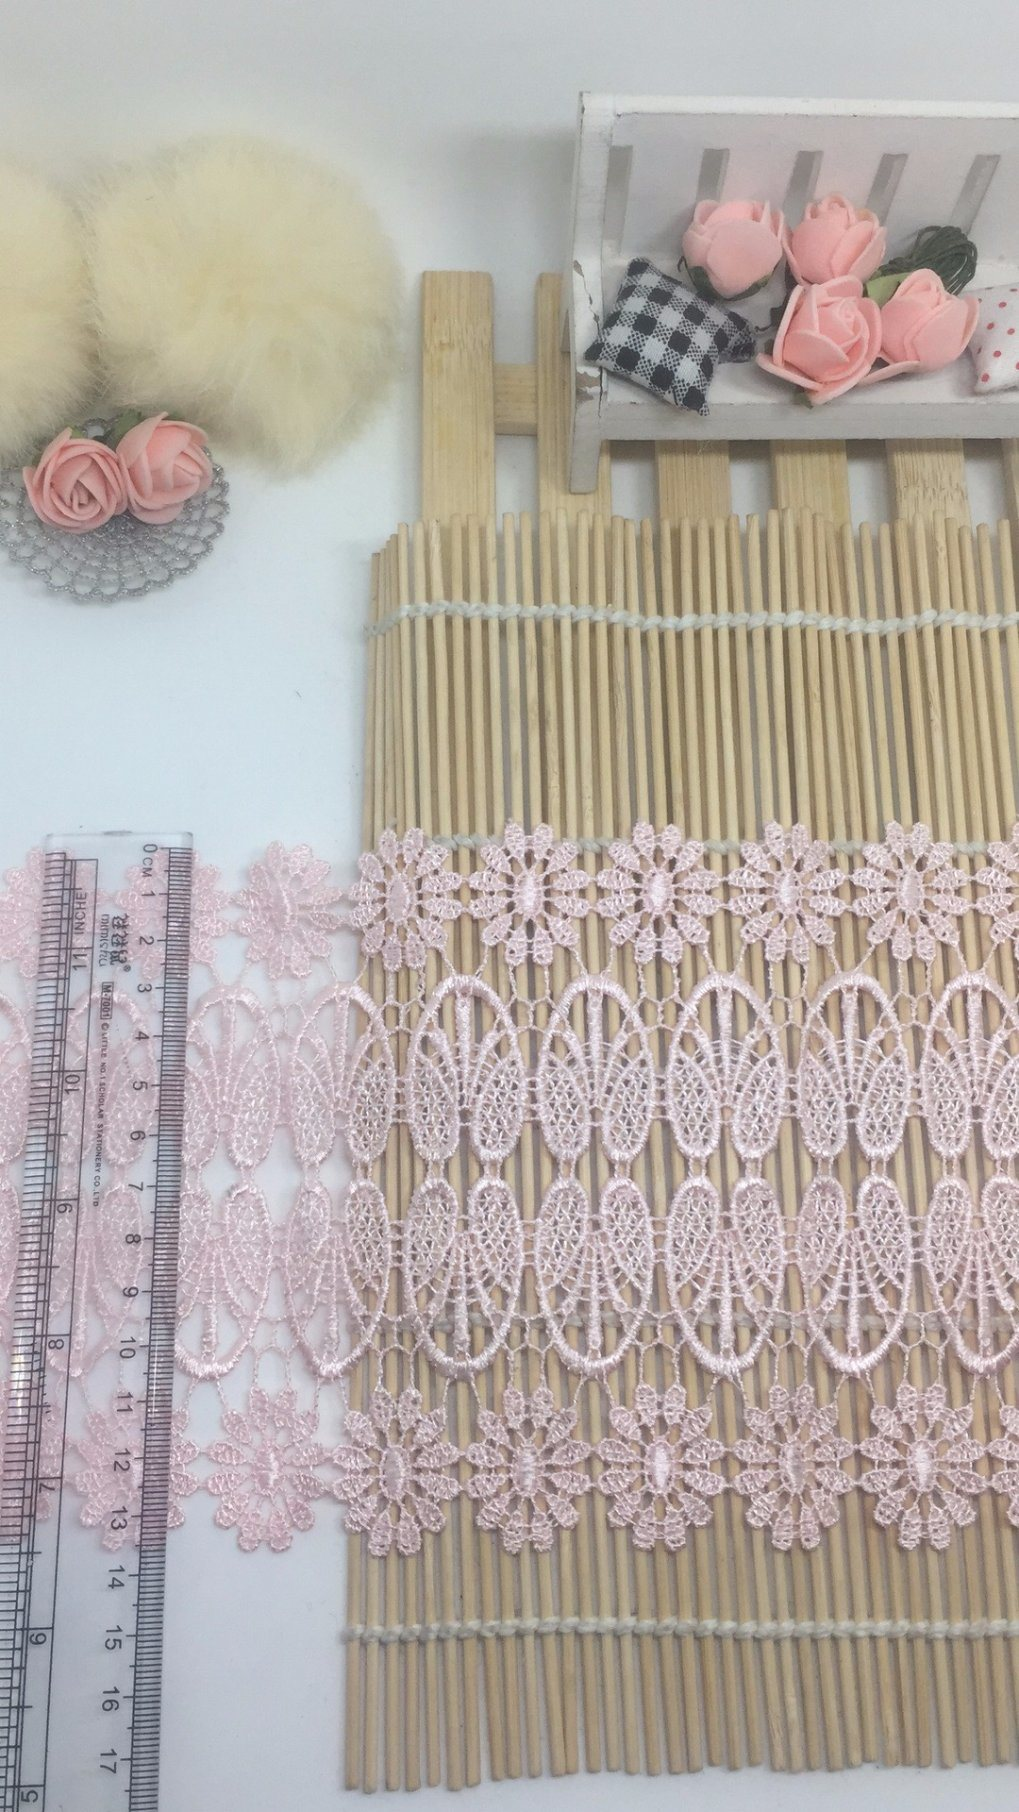 New Fashionable 13.5cm Width Factory Stock Wholesale Sunflower Embroidery Water Soluable Lace for Apparel Accessory & Scarves & Quilts & Comforters Decorations